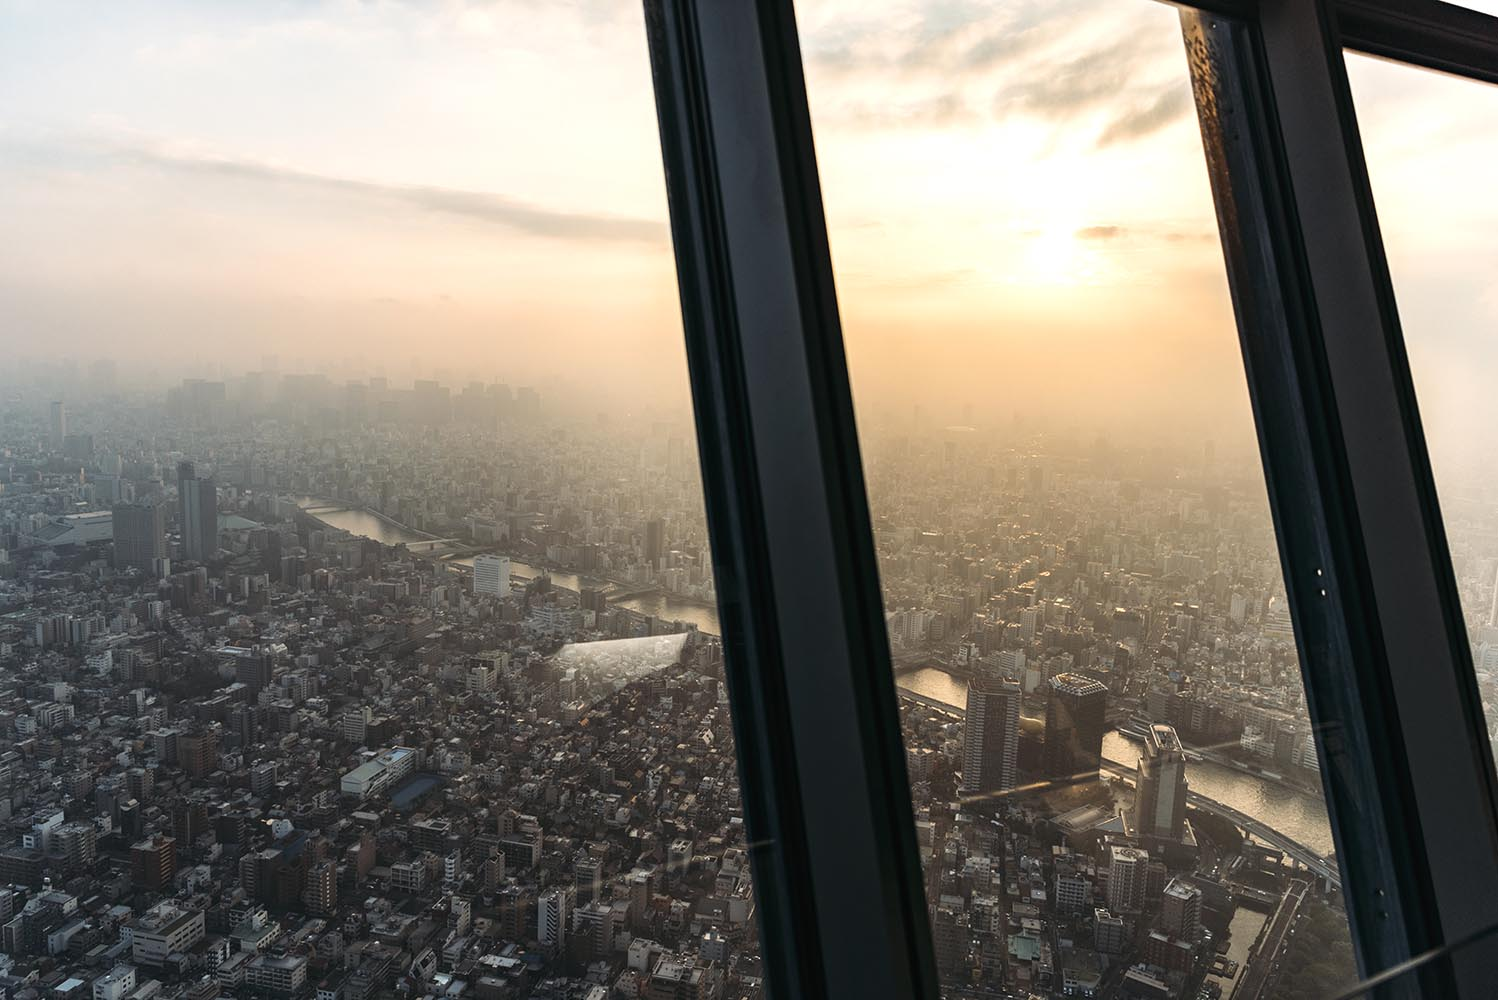 View from Tokyo Skytree at sunset, Tokyo, Japan